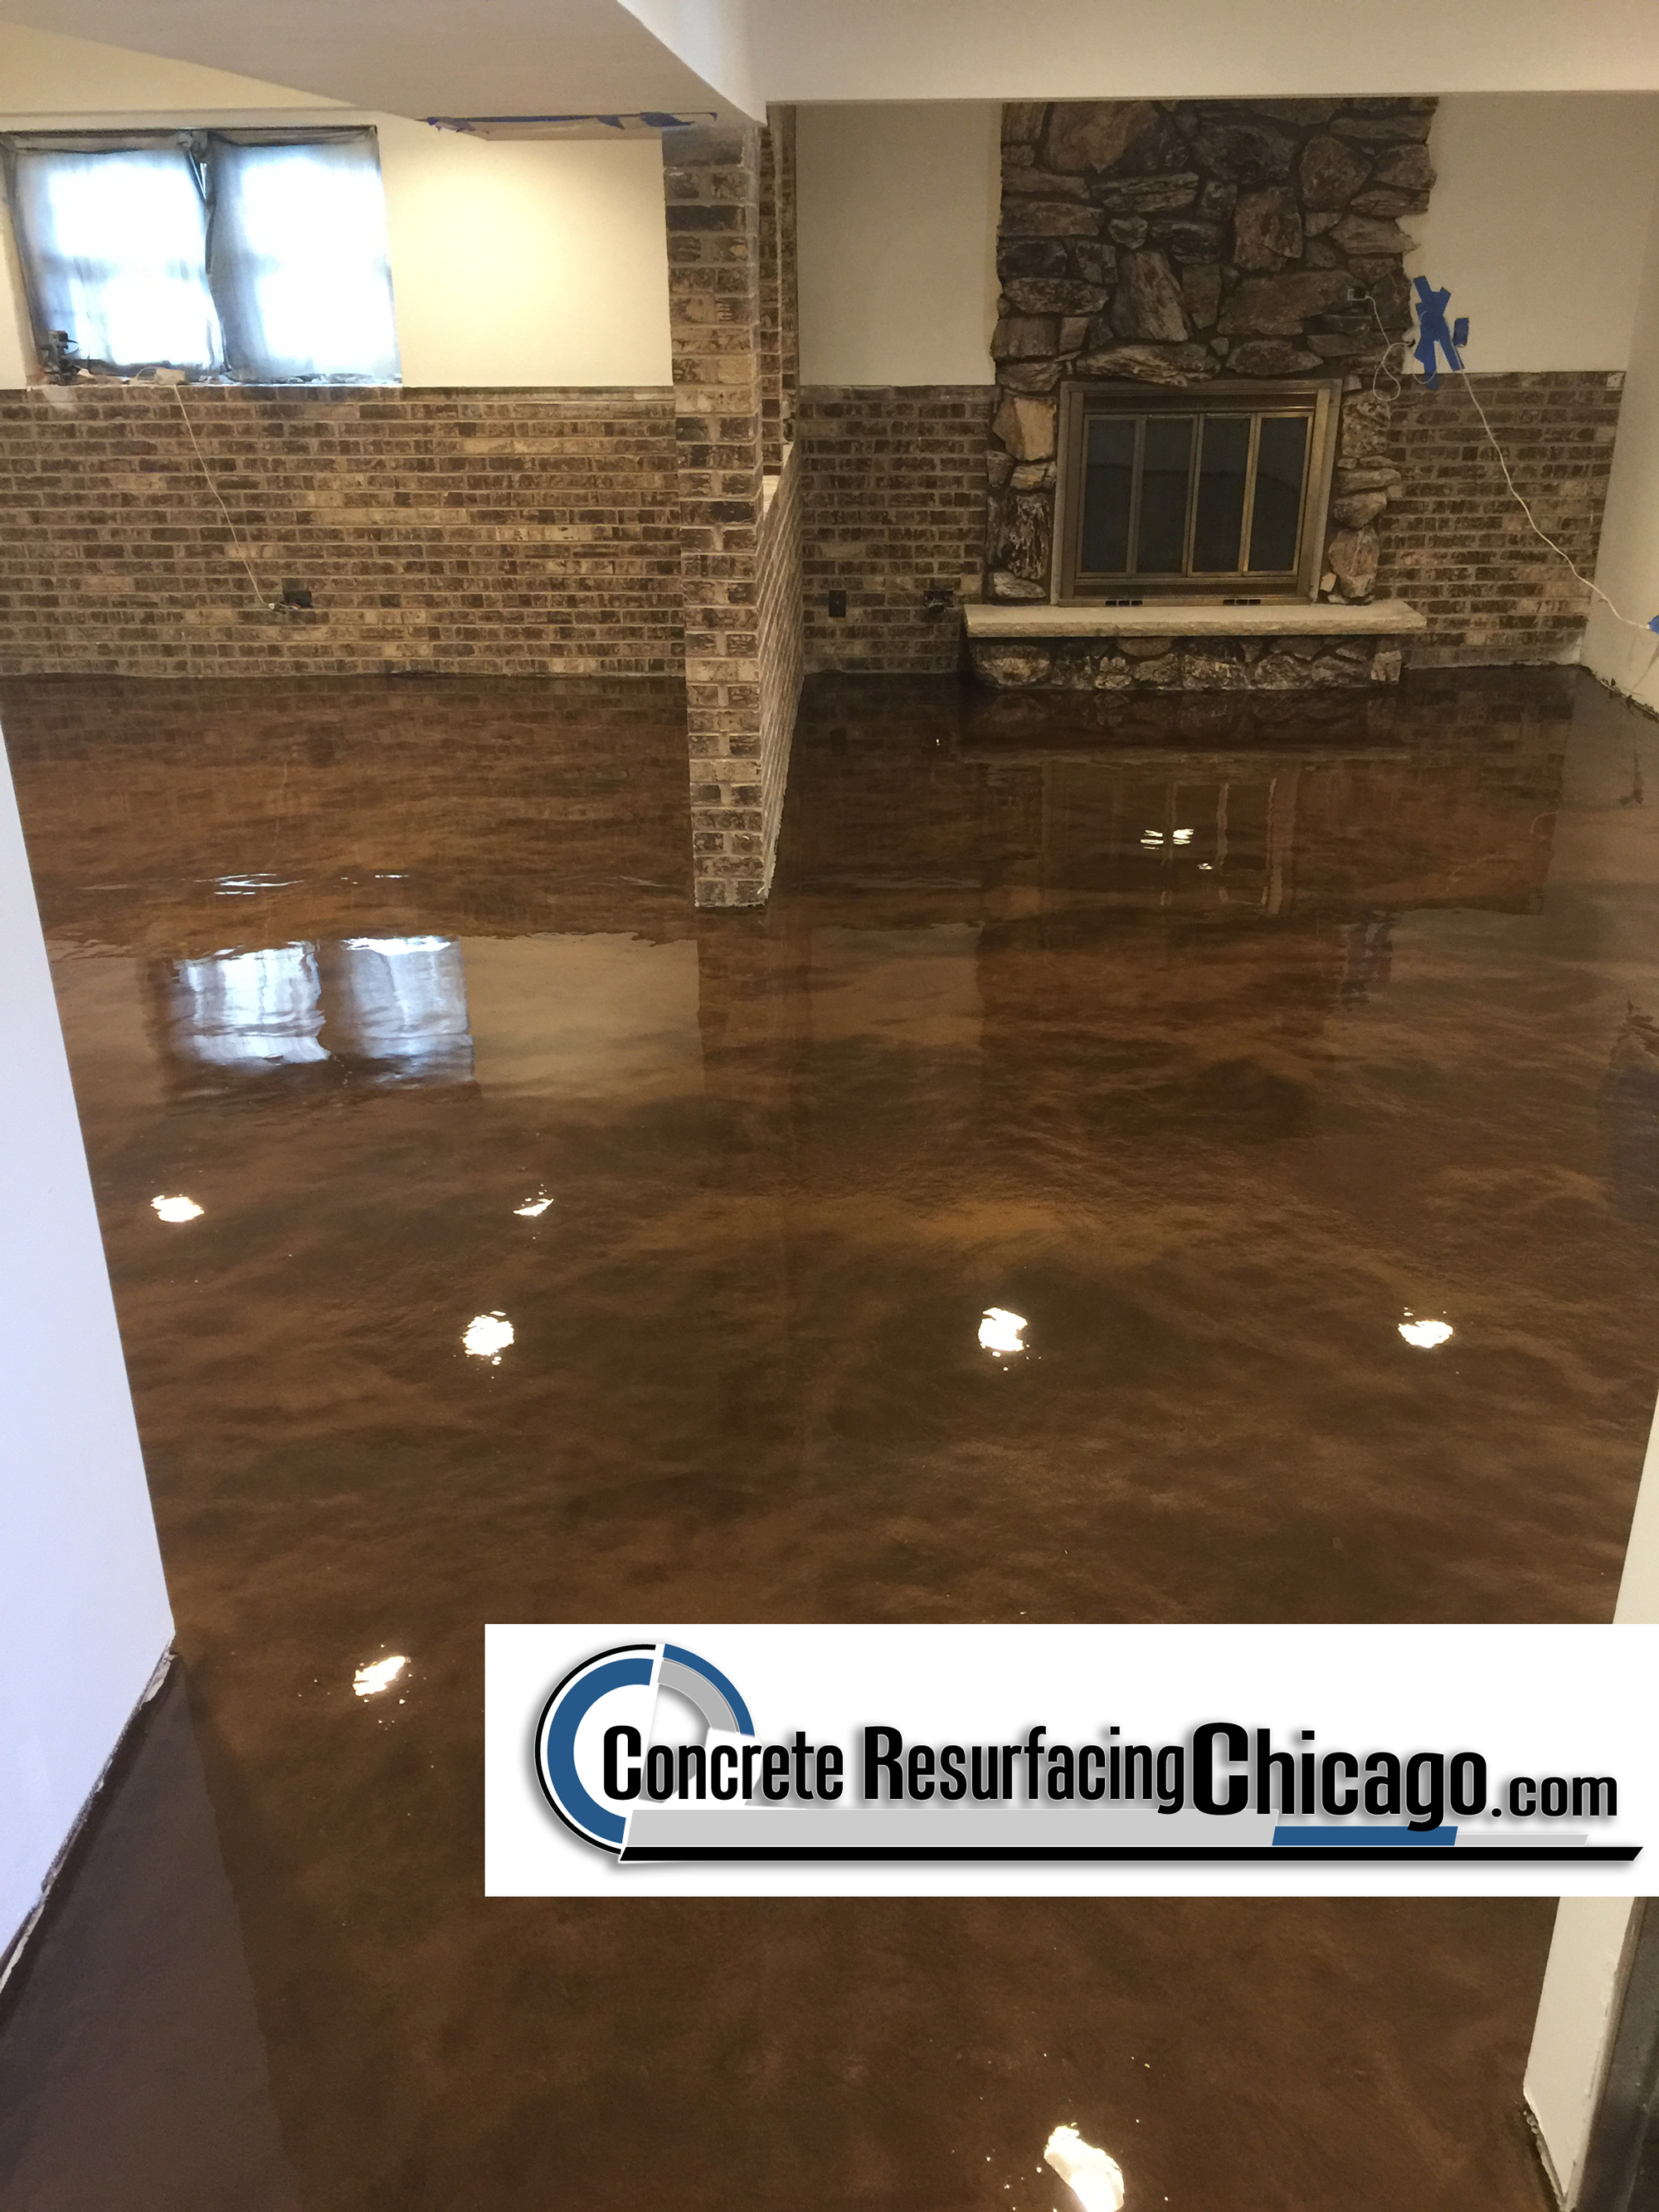 630 448 0317 Concrete Resurfacing Solutions Inc Benefits